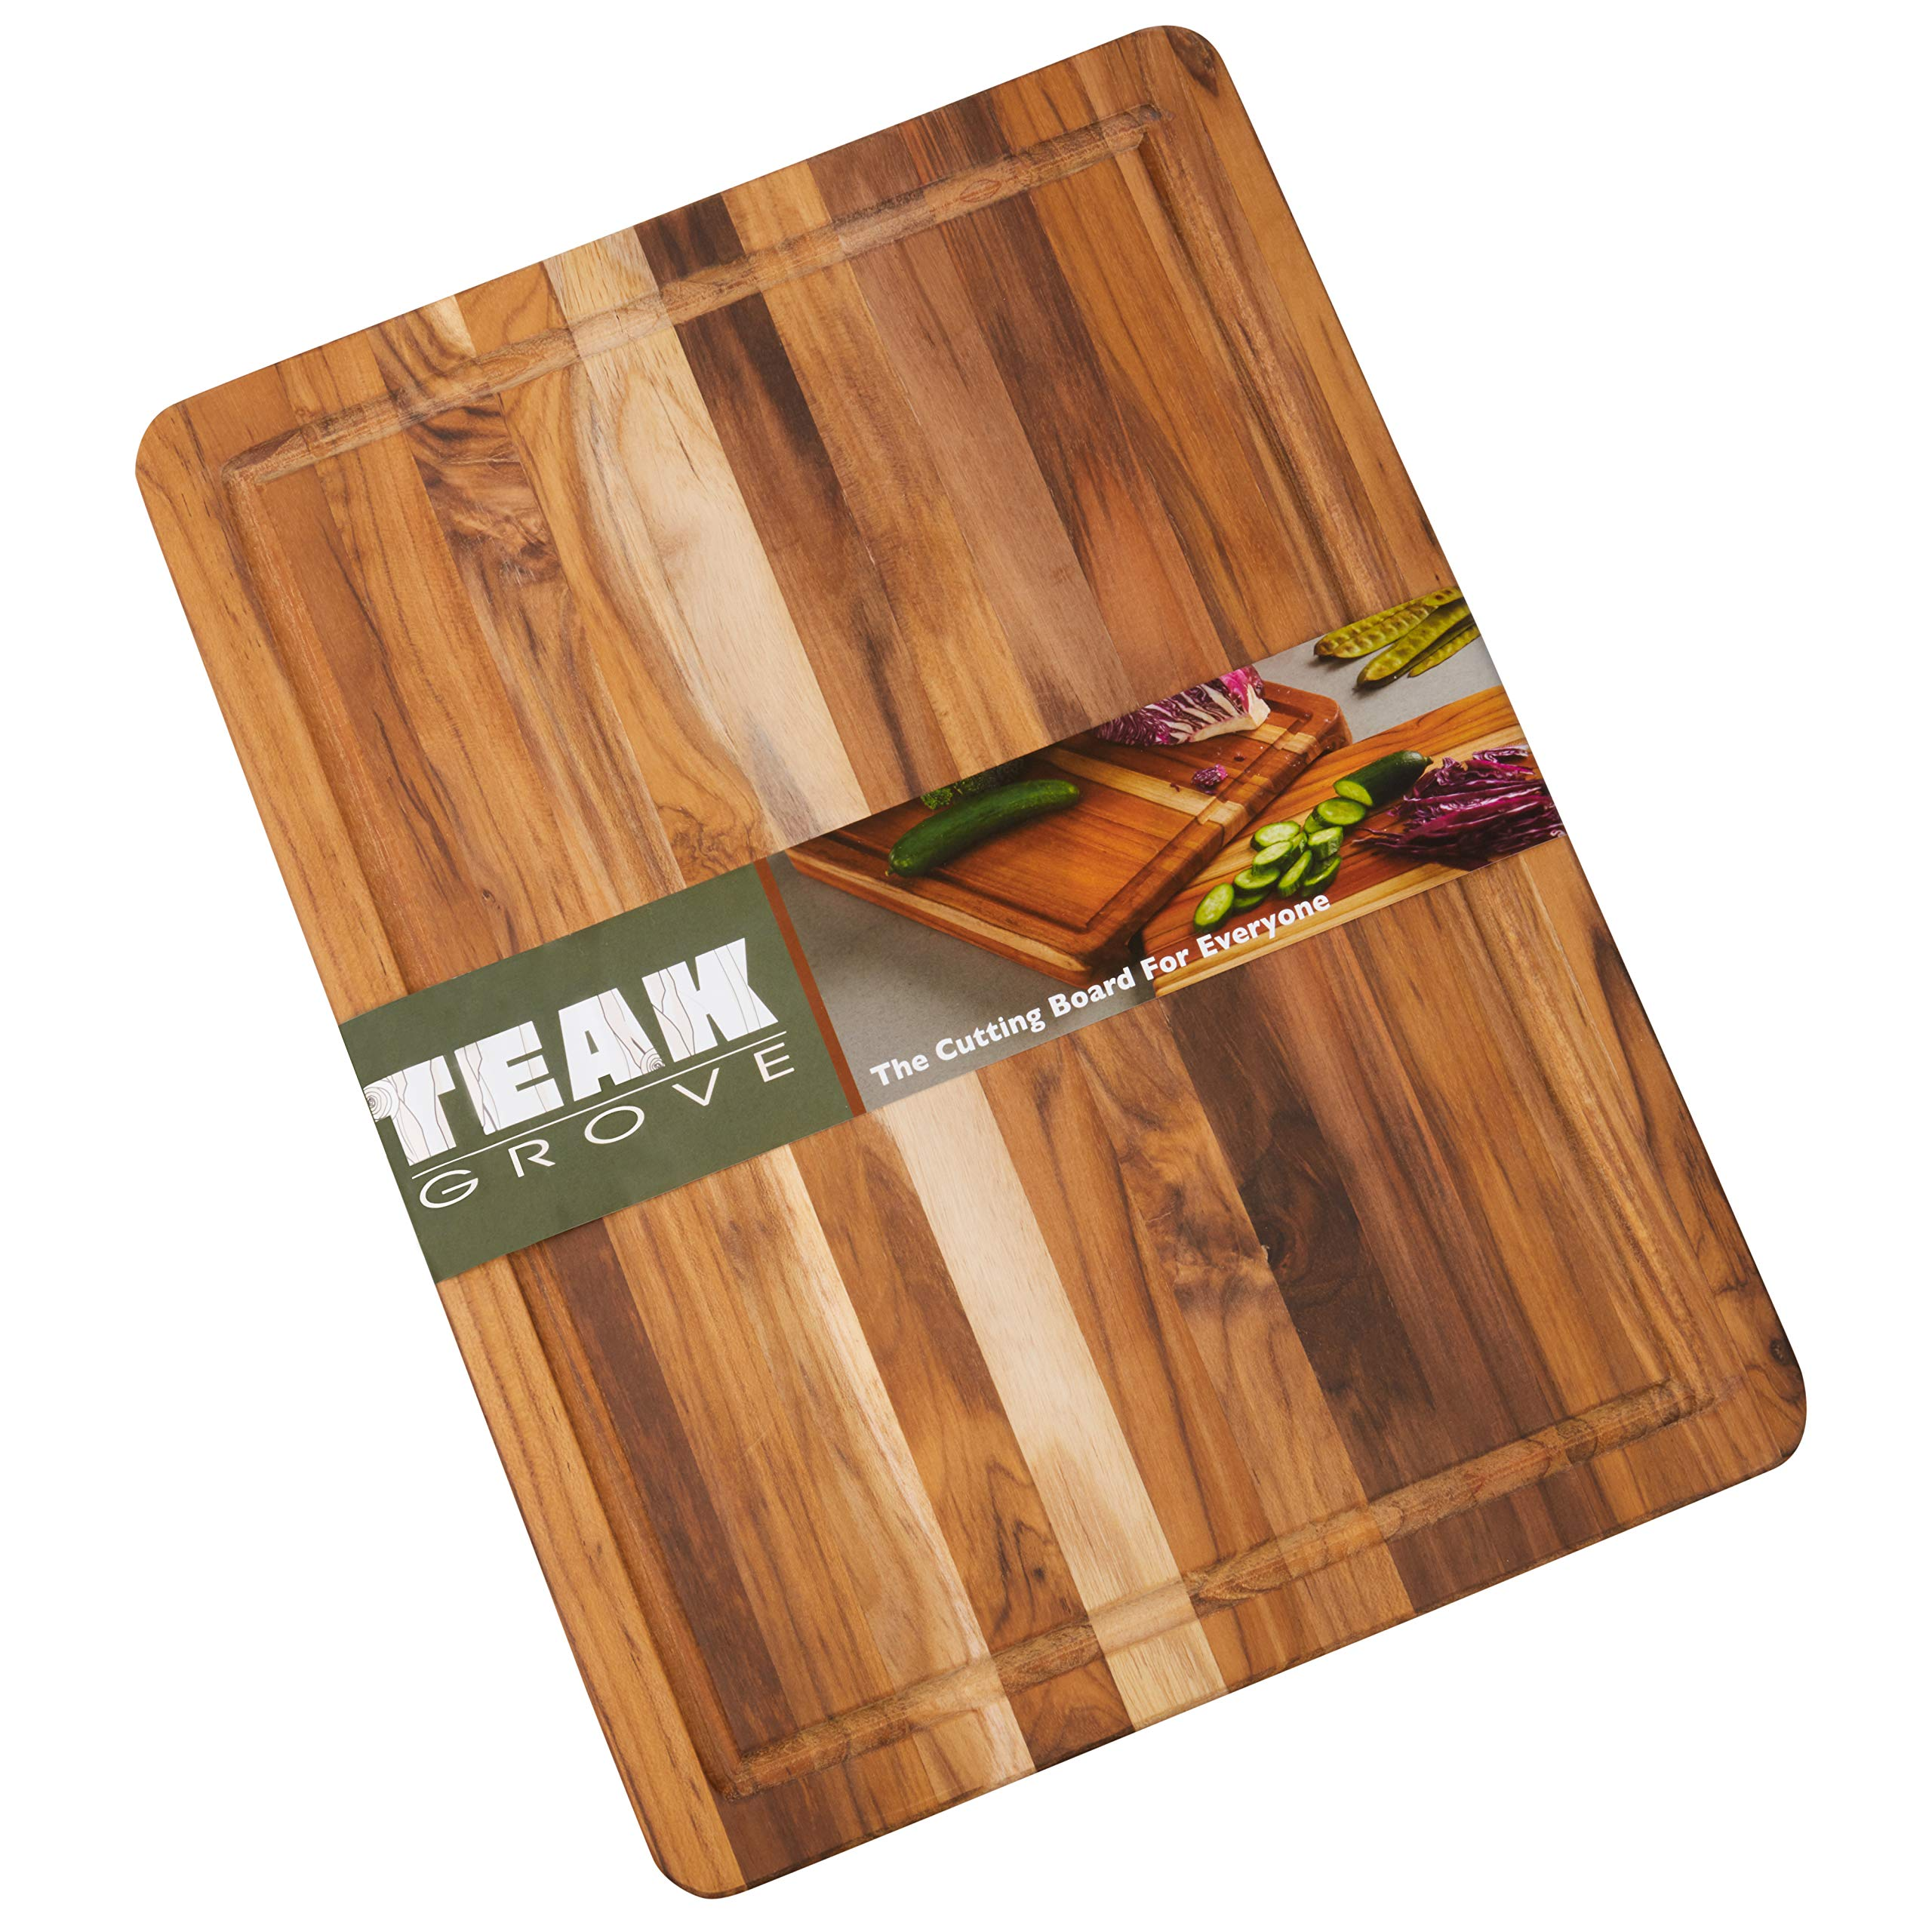 Teak Cutting Board - 16x12'' Wooden Edge Grain Carving Board with Juice Canal - Large Wood Kitchen Chopping Board (Оne Расk)